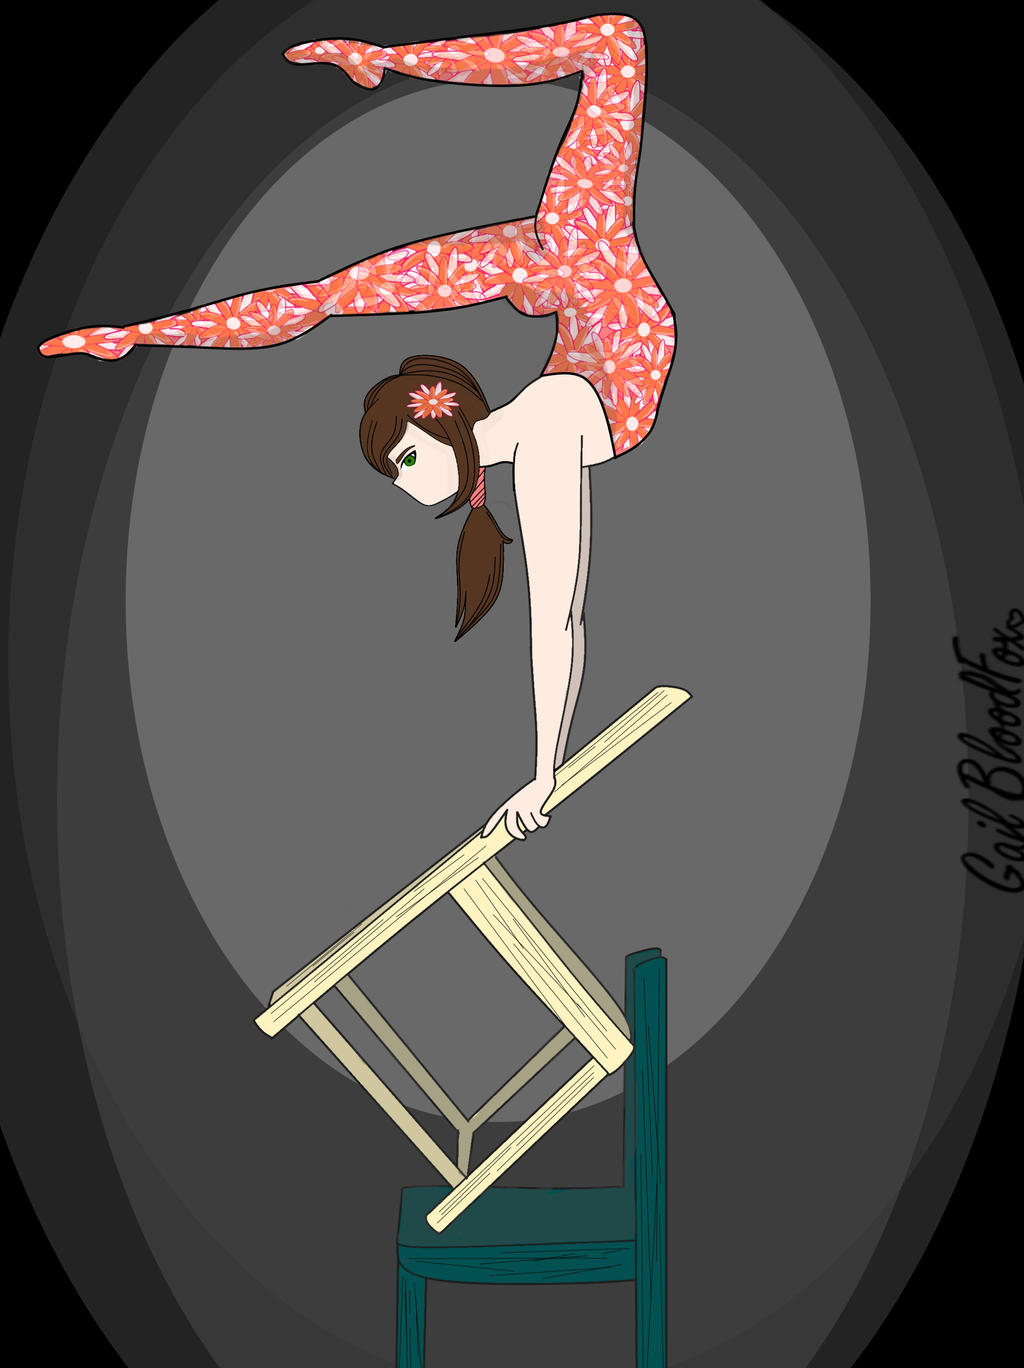 Acrobat by WhiteBleedingFox